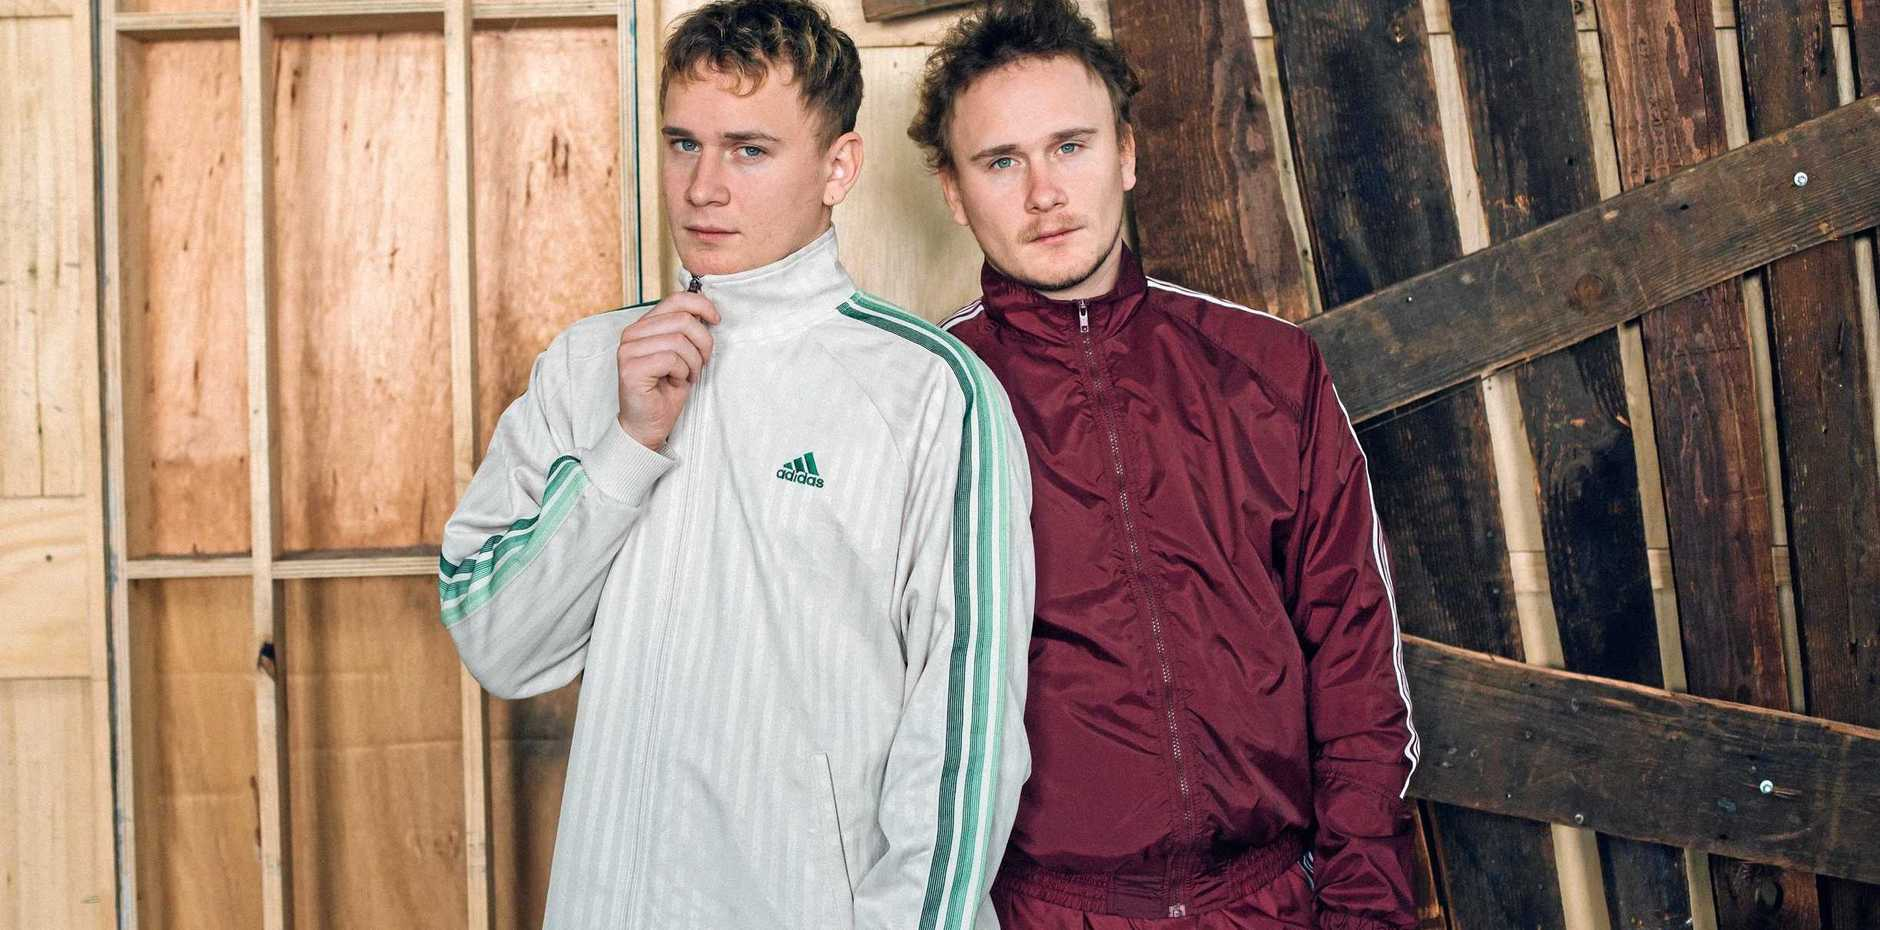 Cosmo's Midnight are an Australian electronic music duo formed by twin brothers Cosmo and Patrick Liney.